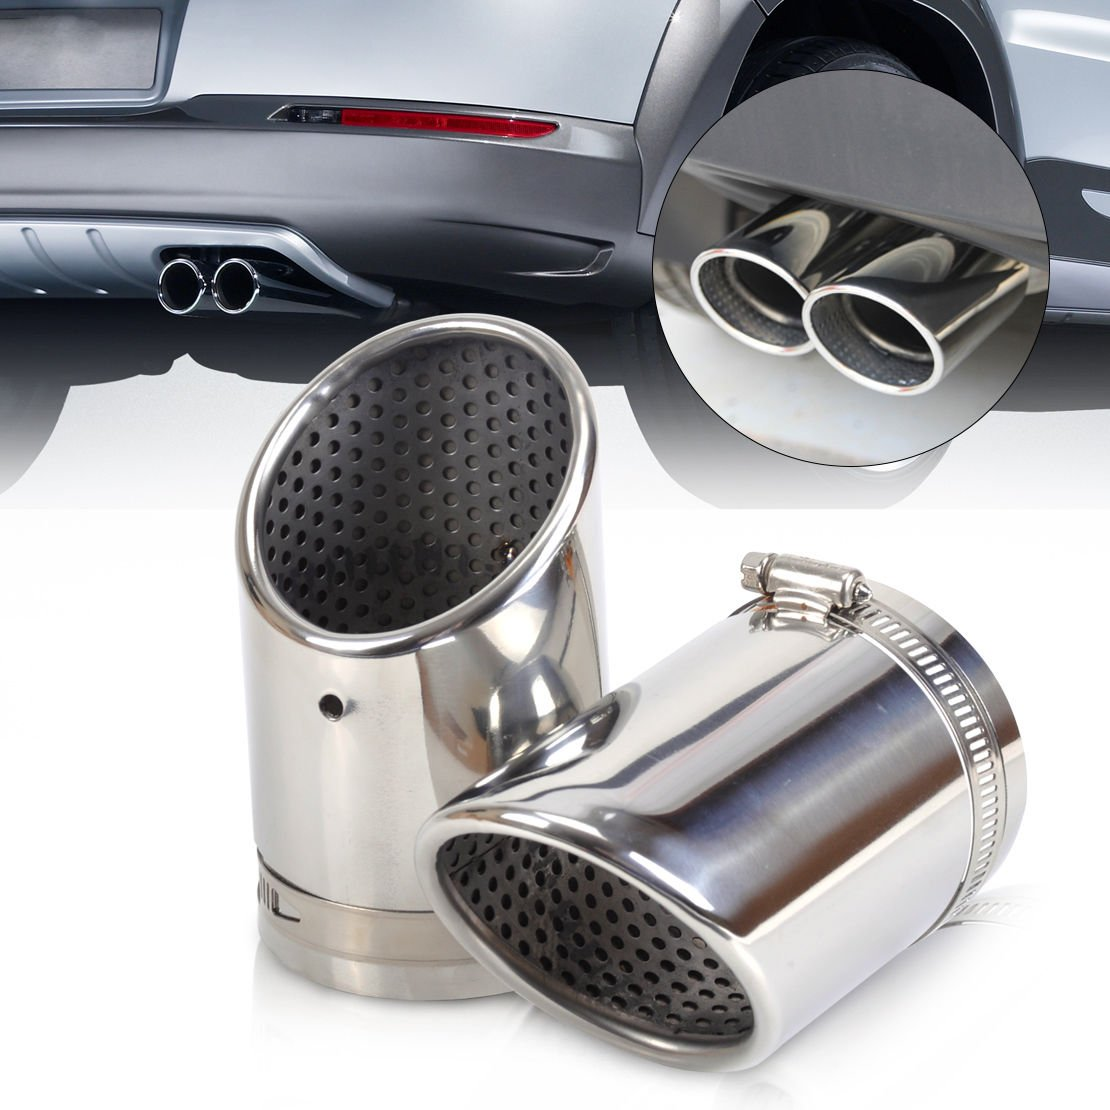 KT-Supply Stainless Steel Exhaust Tailpipe Muffler Tip Trim